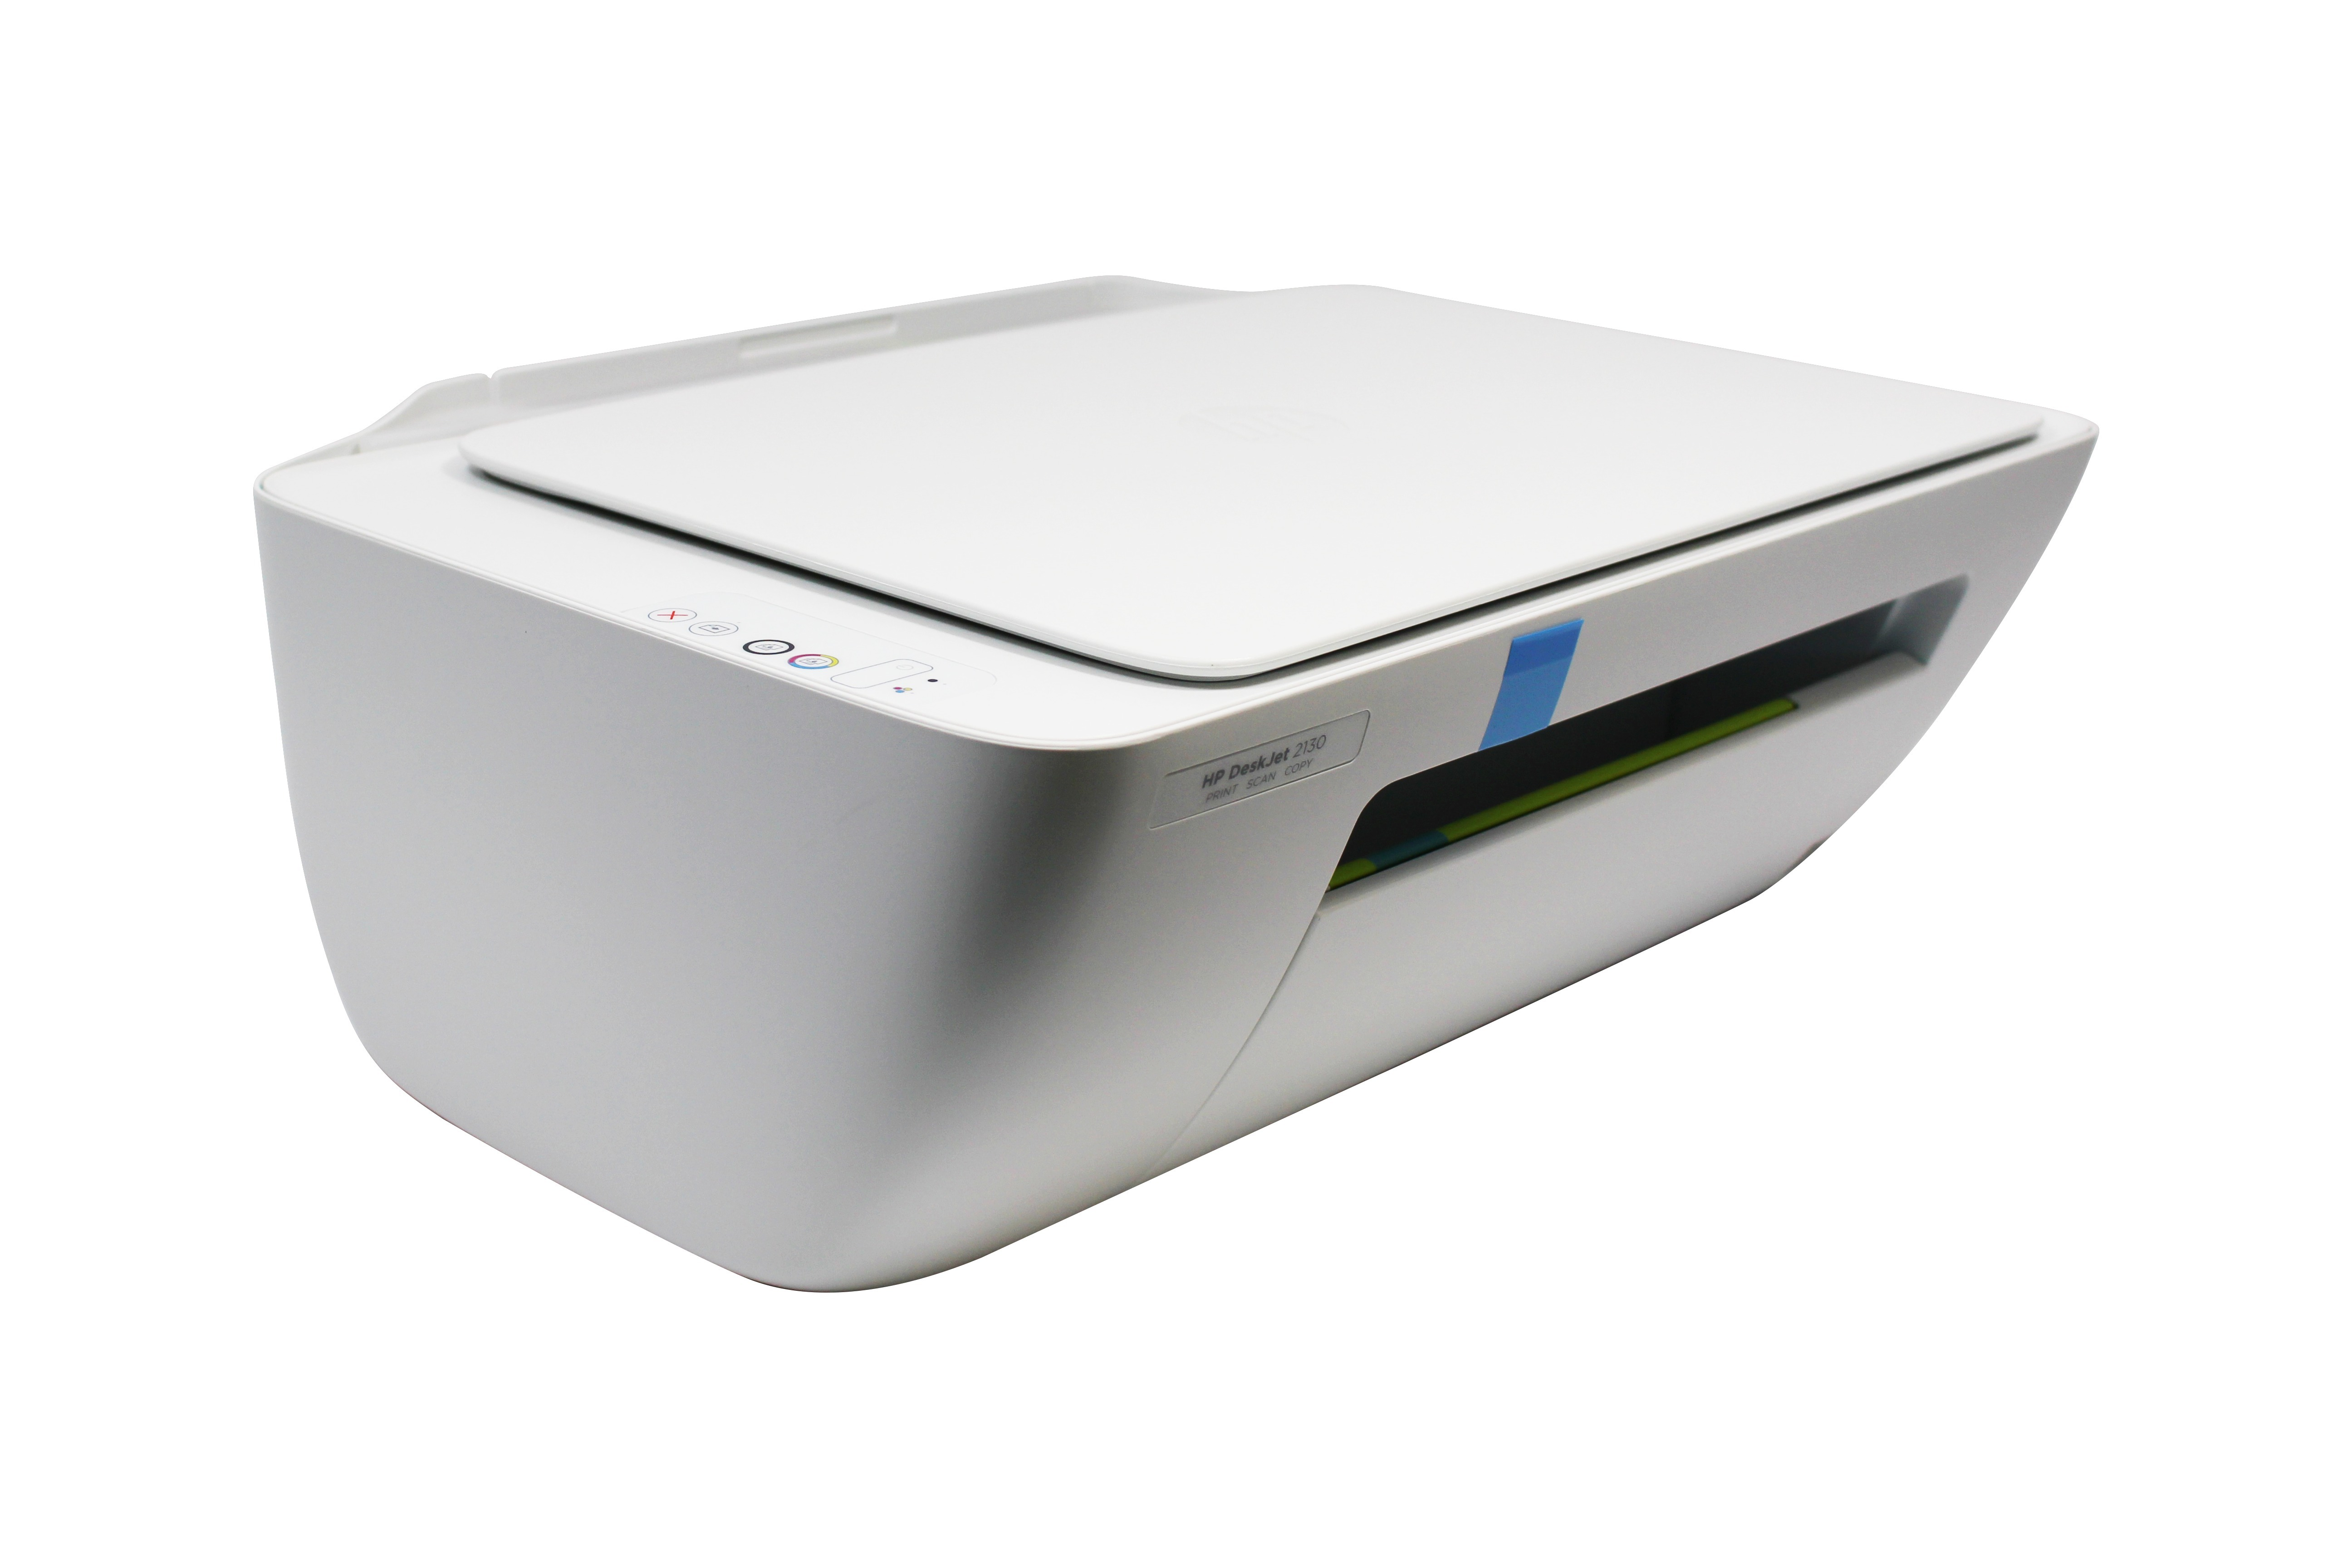 HP DeskJet 2130 Compact All-in-One Photo Print Copy Scan ...